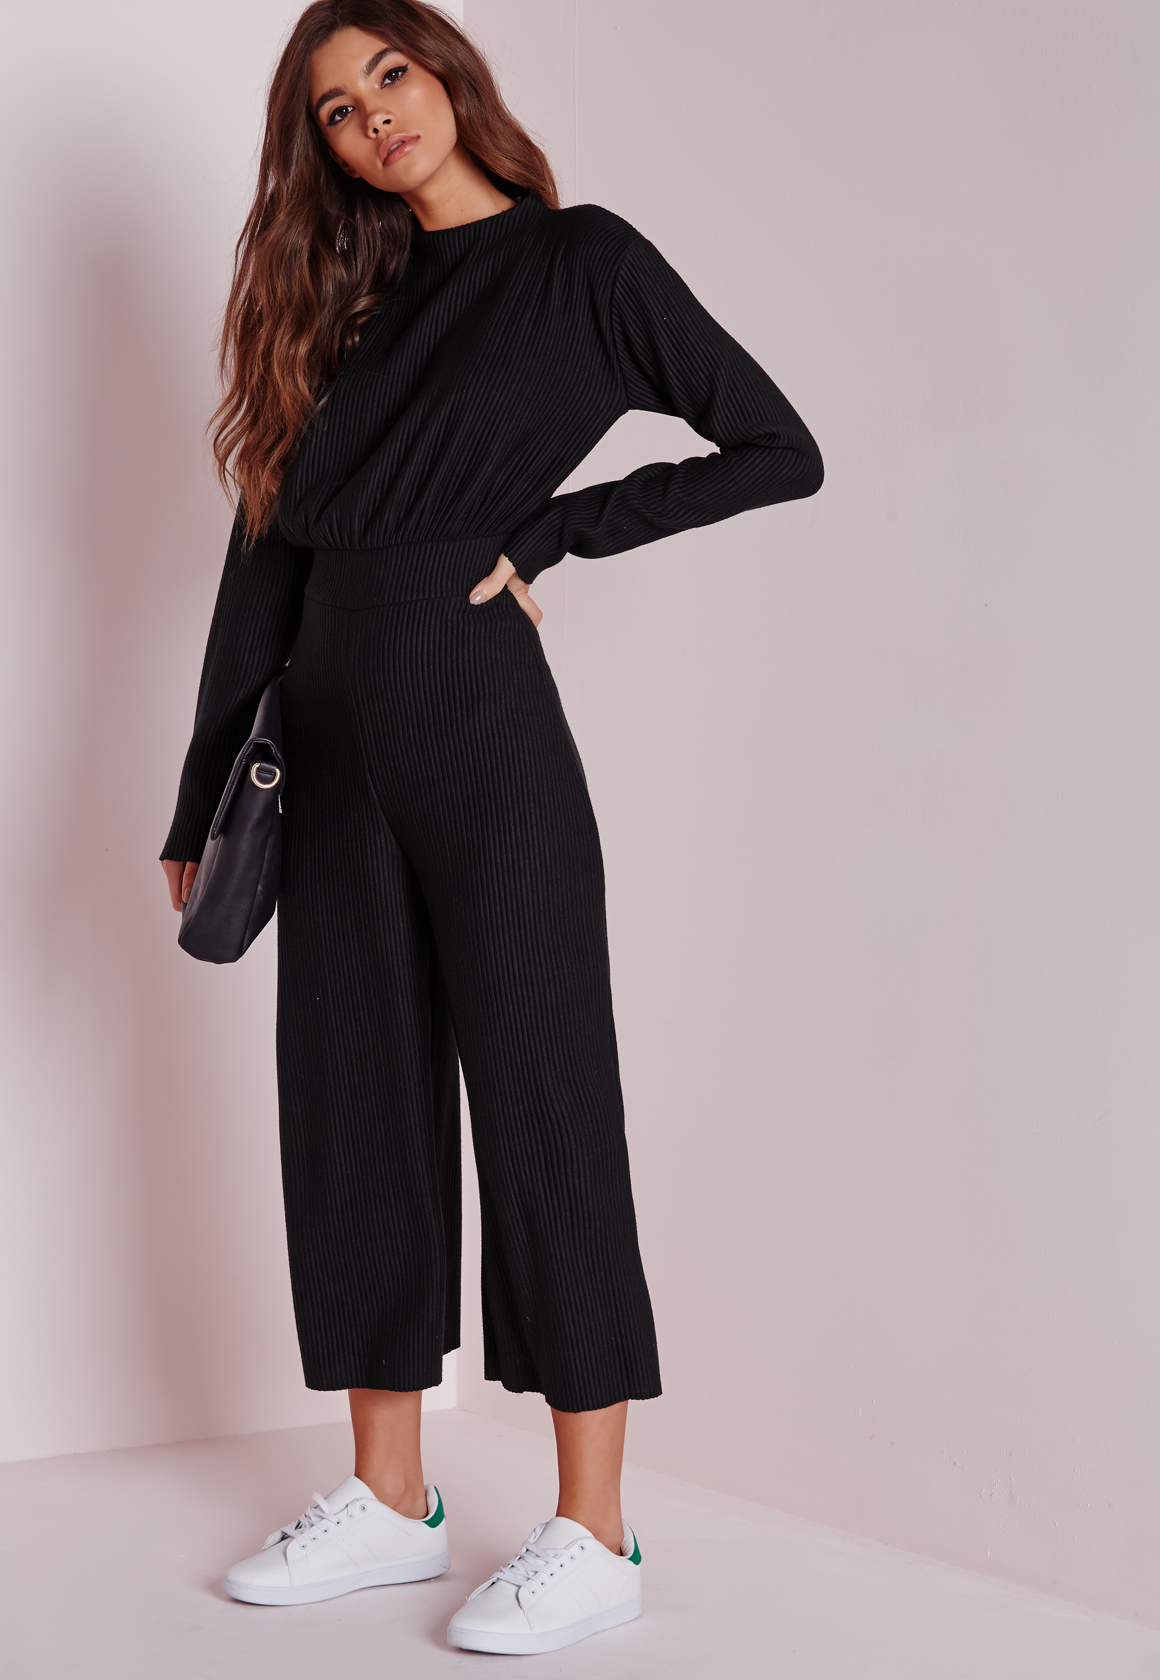 Missguided Long Sleeve Ribbed Culotte Jumpsuit Black in Black   Lyst